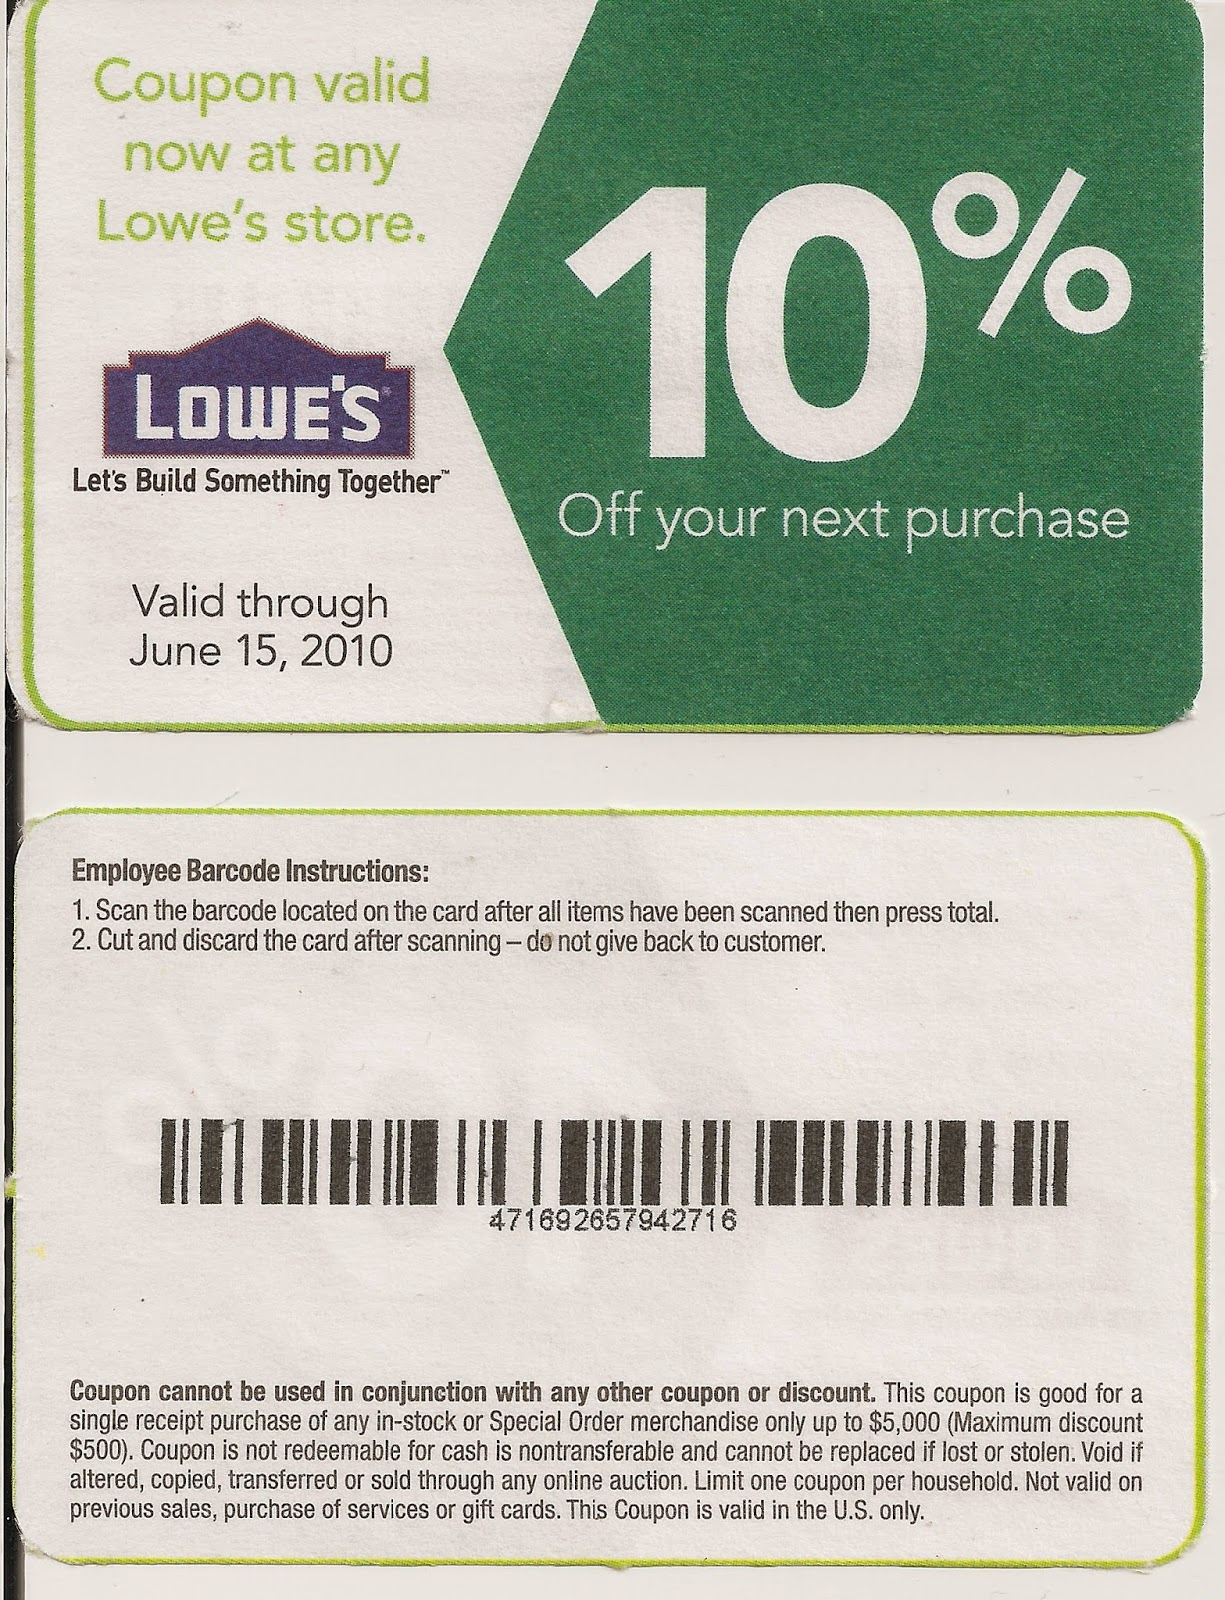 Lowes com coupon code